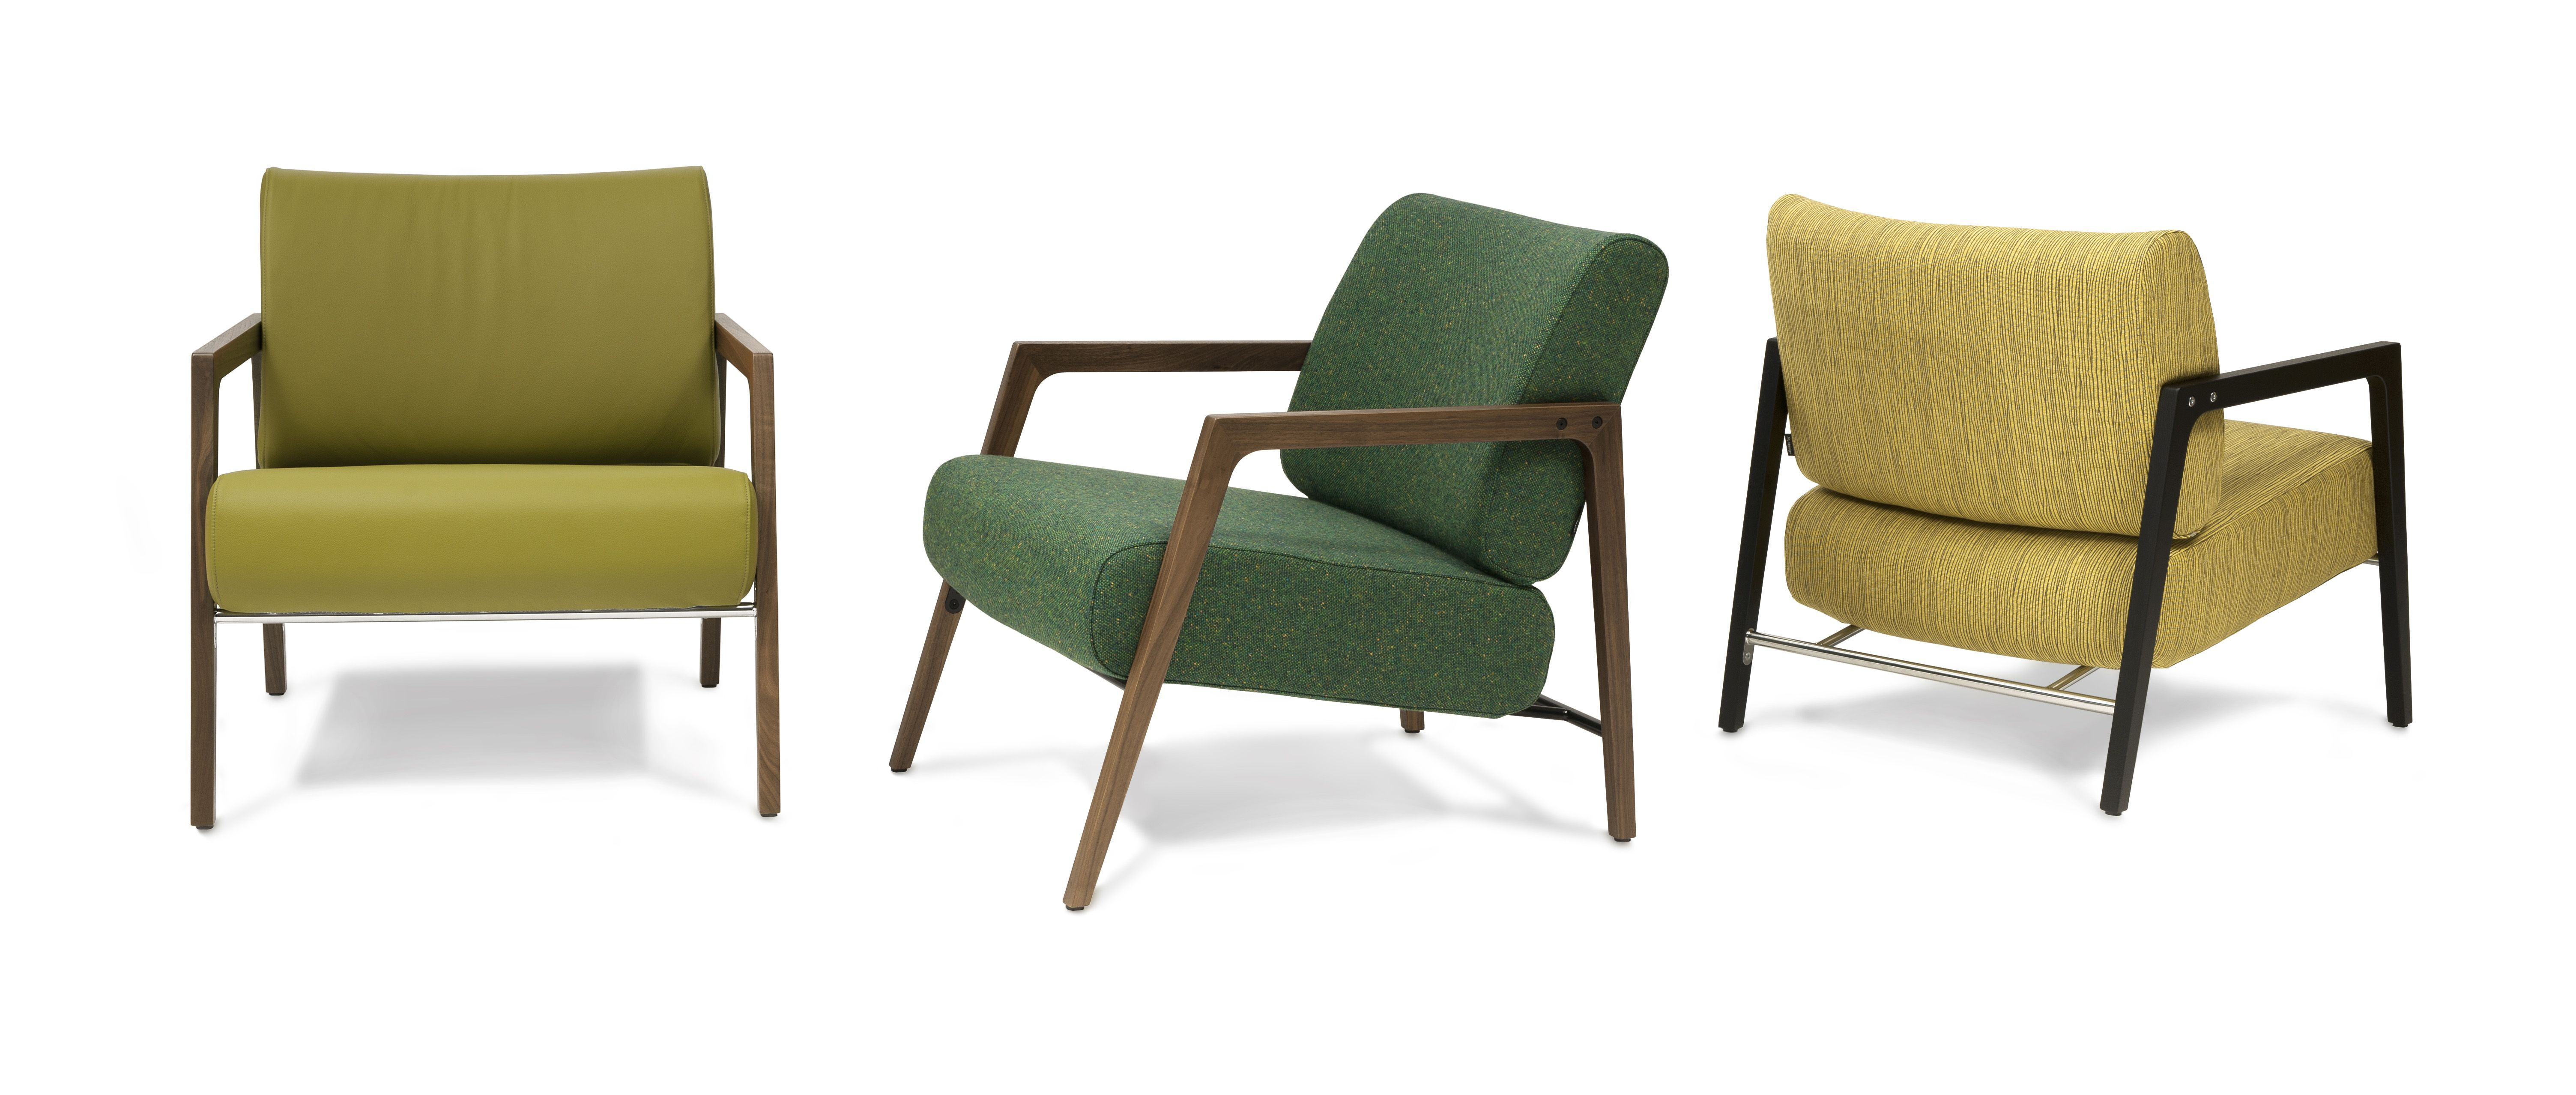 Design Fauteuils Harvink.Harvink Fauteuil Fraai Wannahaves Outdoor Chairs